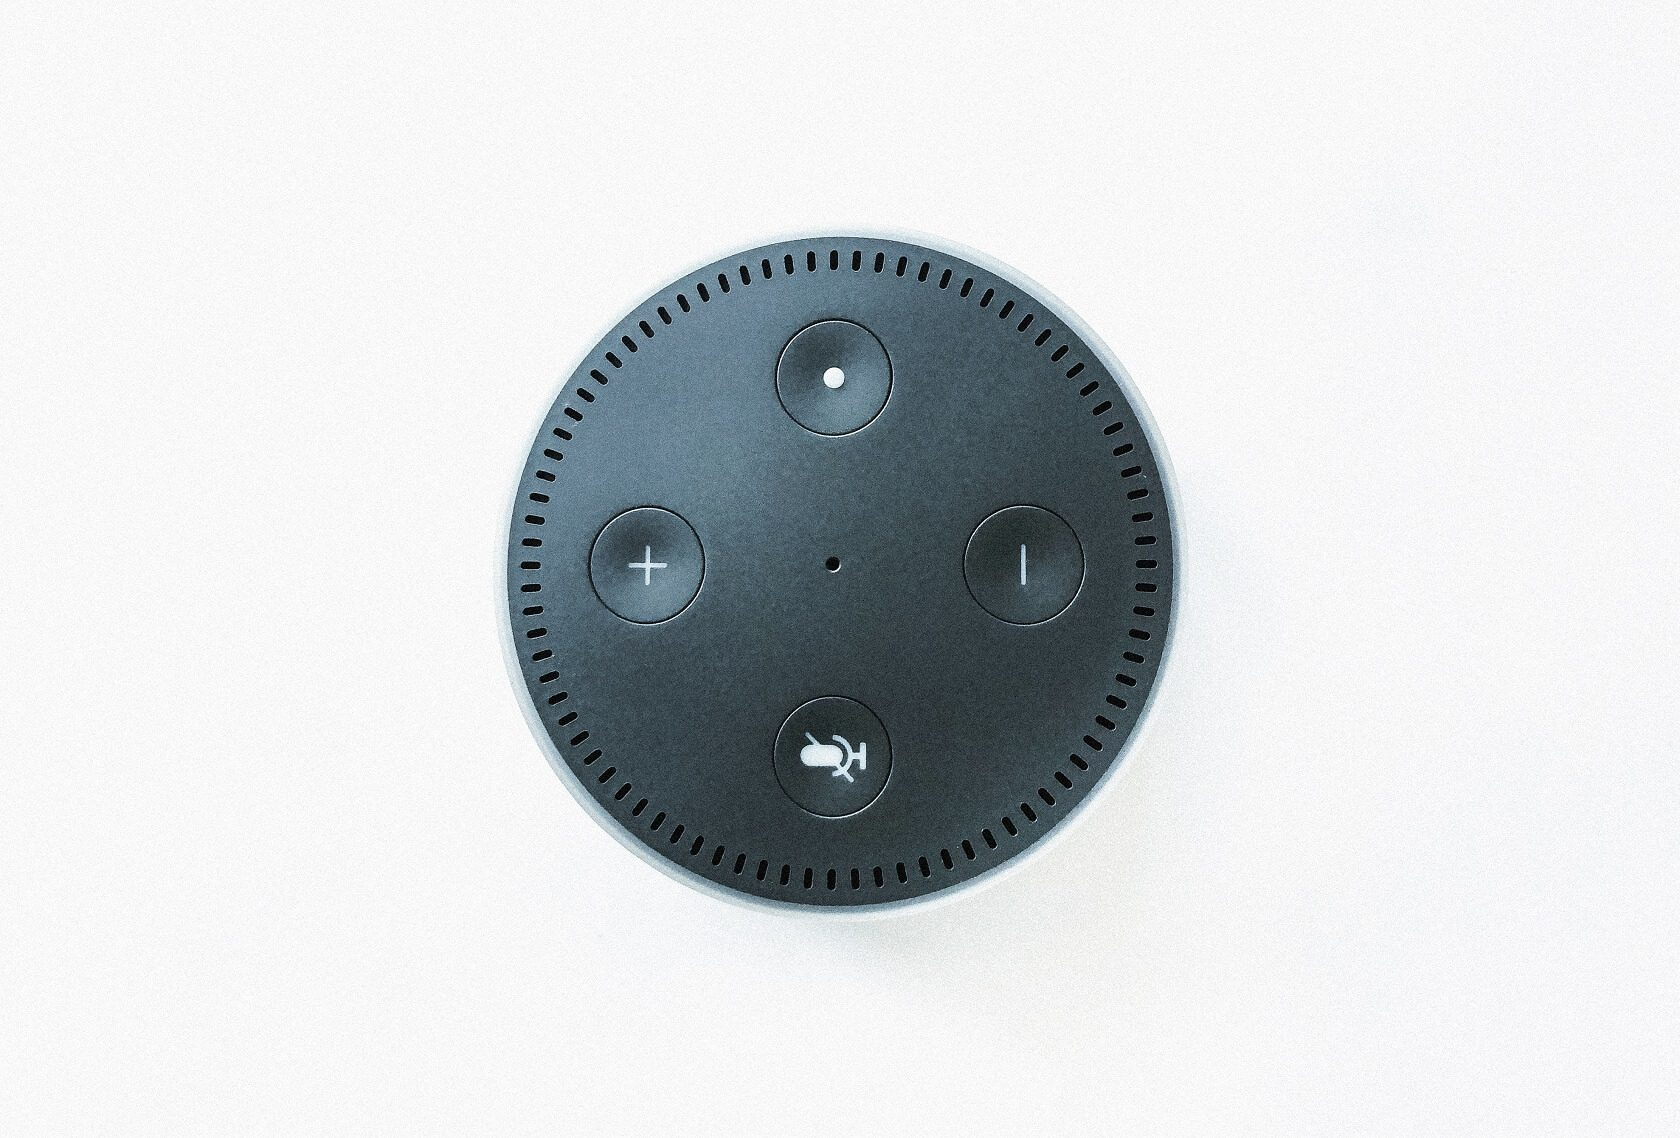 A top view of Amazon Echo